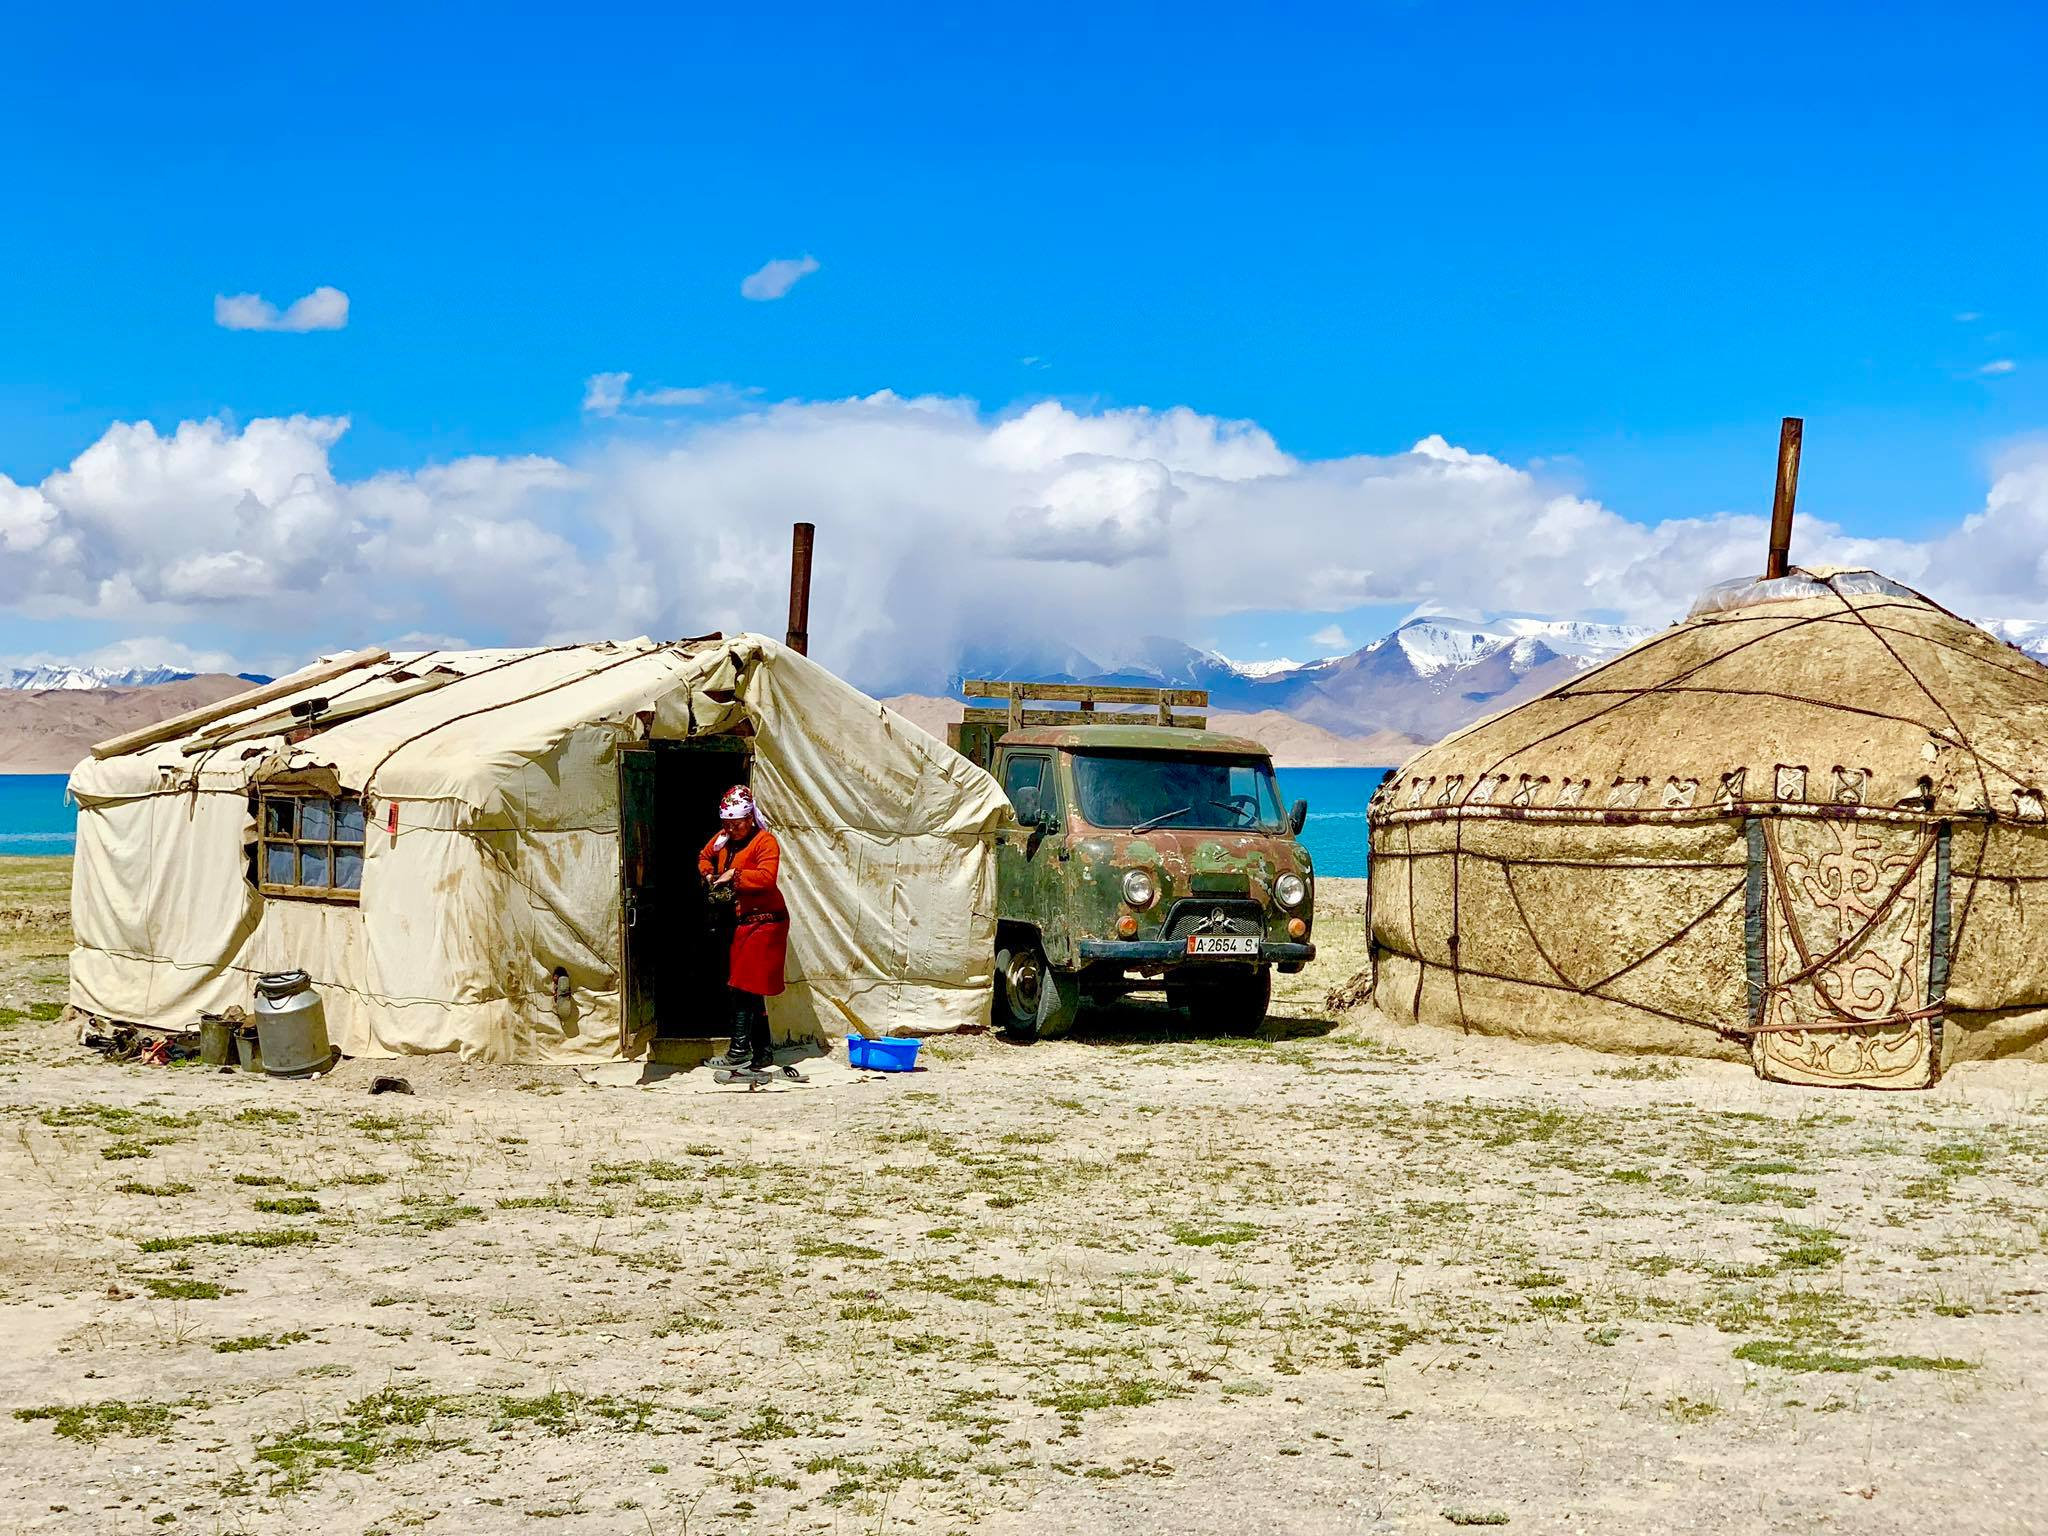 Kach Solo Travels in 2019 Hello from KYRGYZSTAN, my 128th country33.jpg